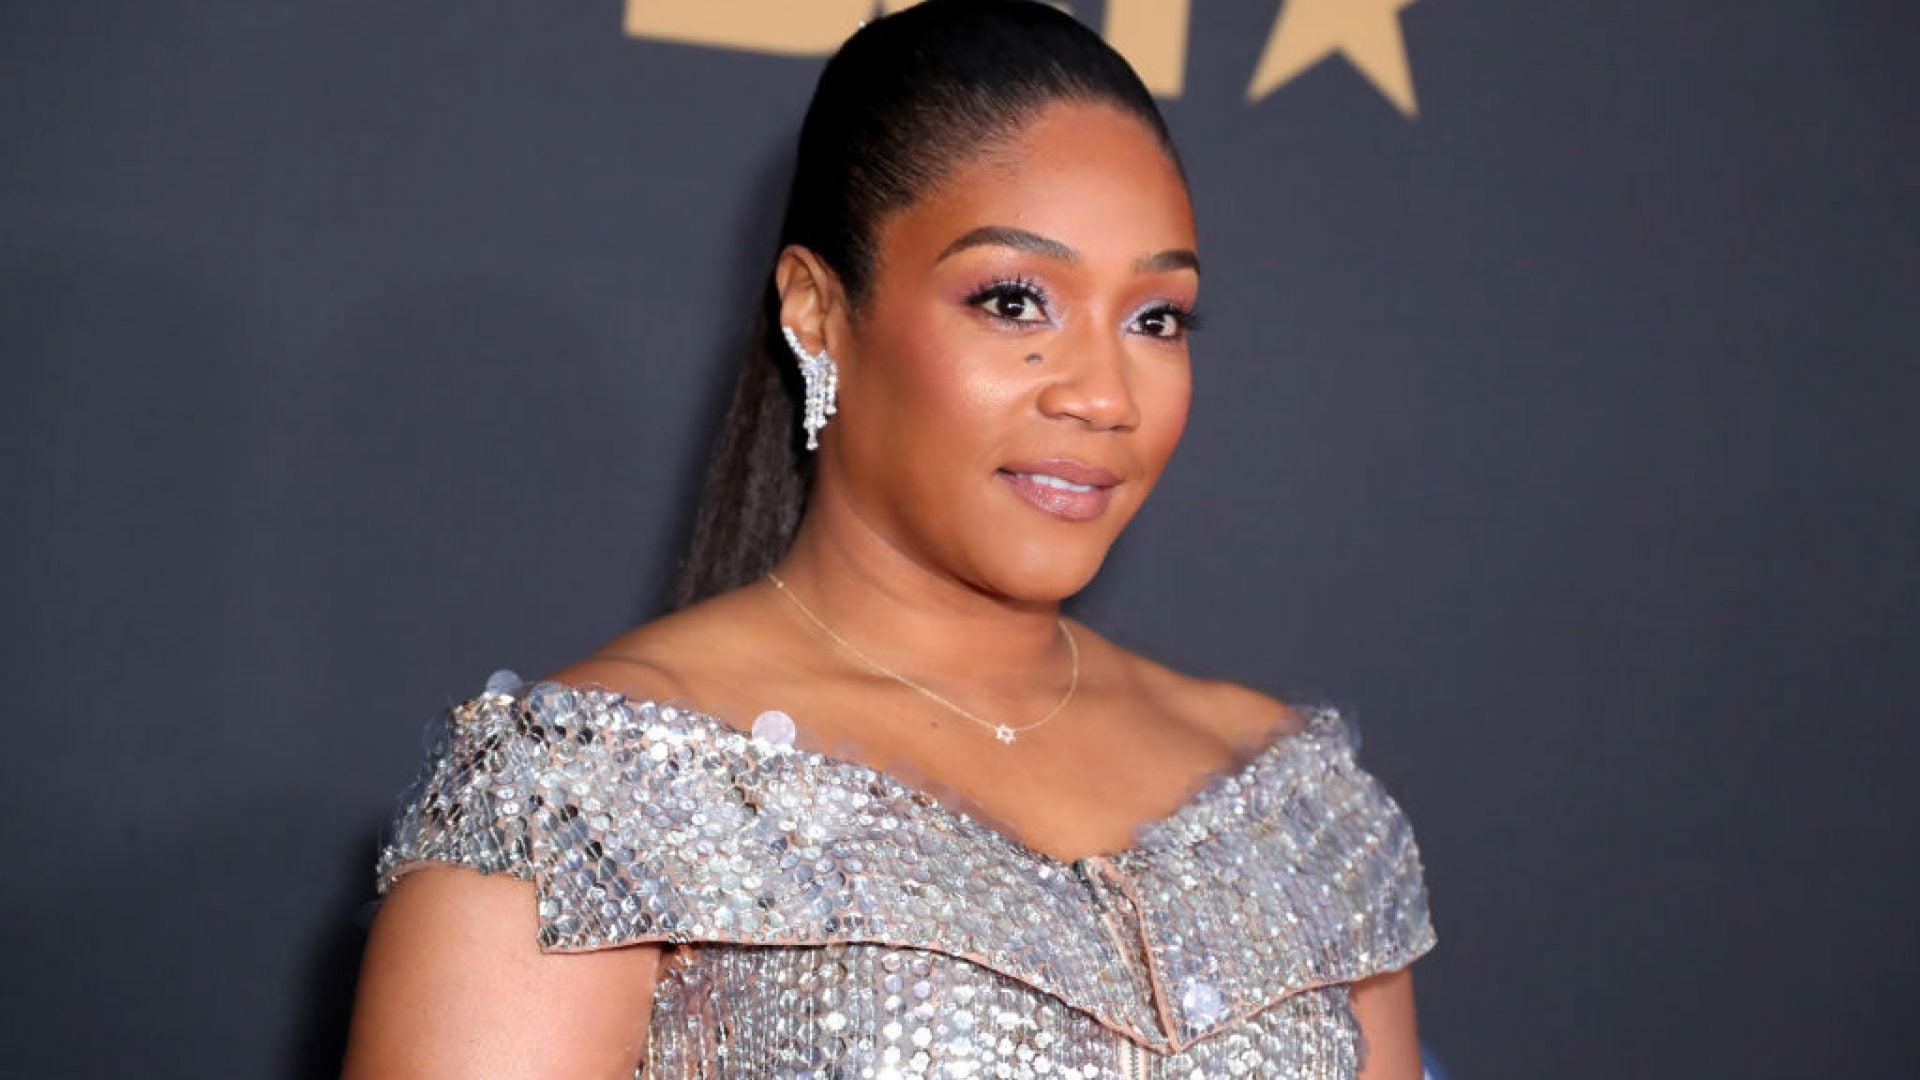 Tiffany Haddish Turned Down Role In Chris Rock's 'Top Five' Due To Nudity